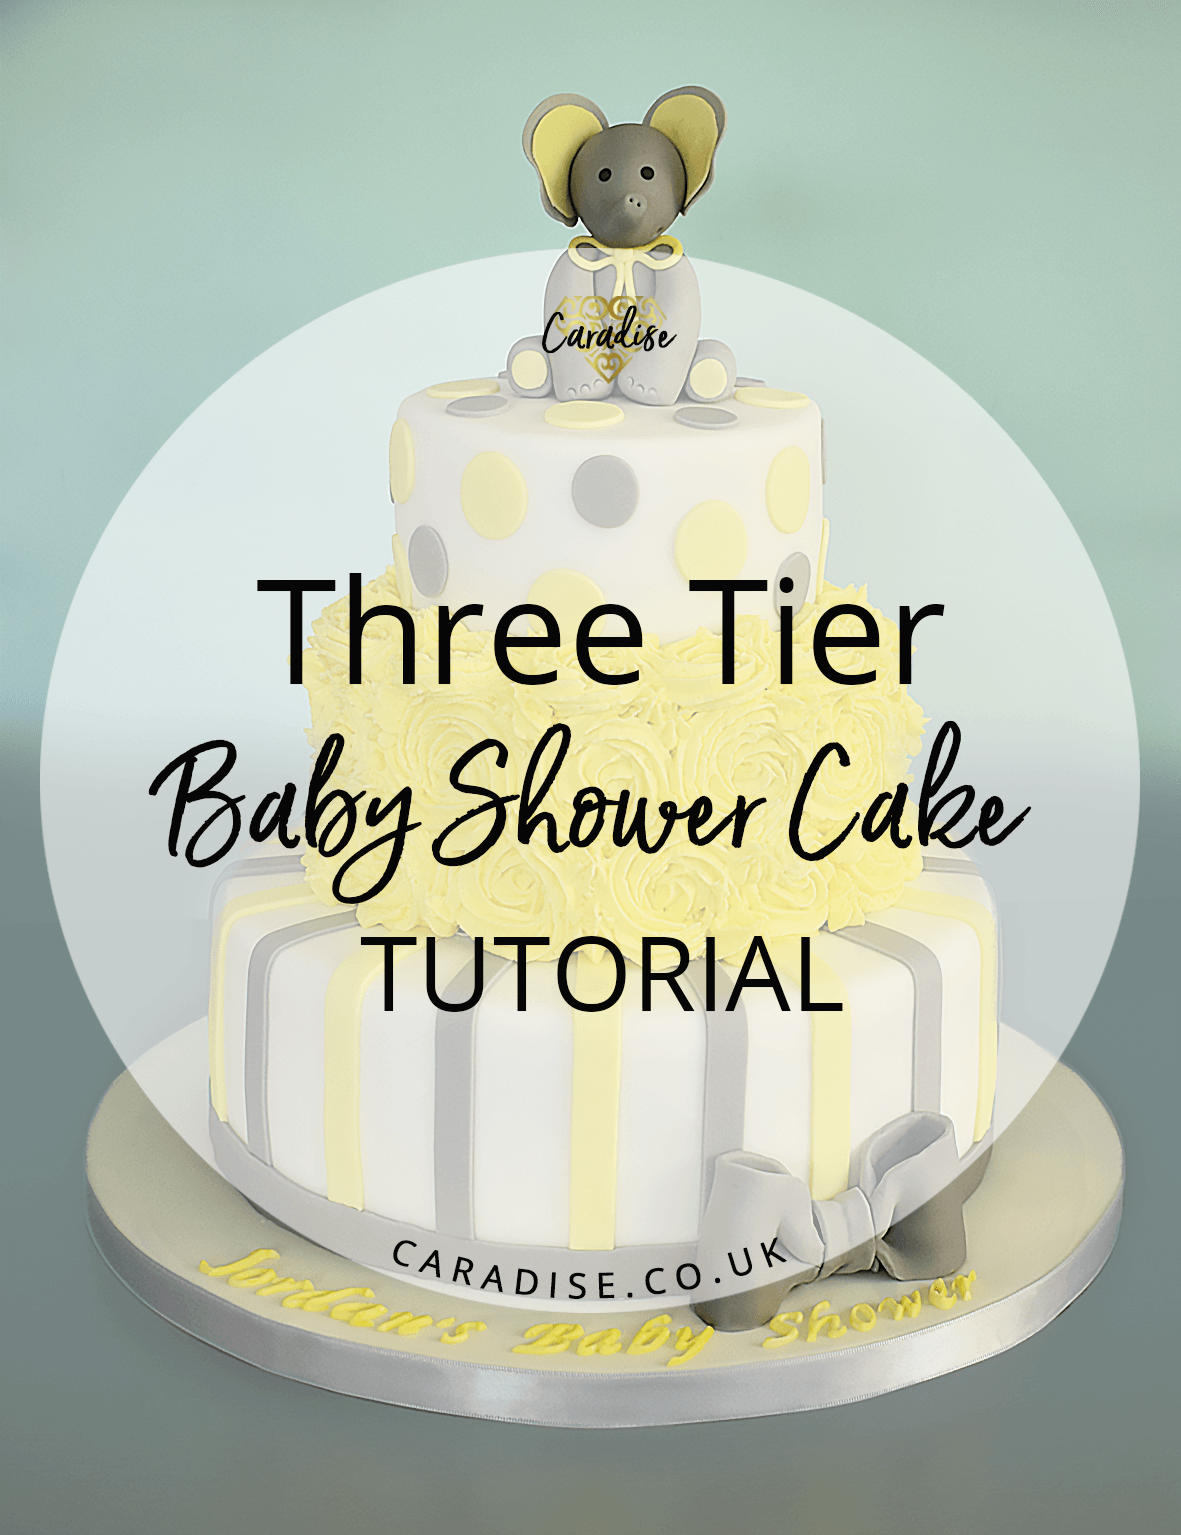 Three Tier Baby Shower Cake Tutorial